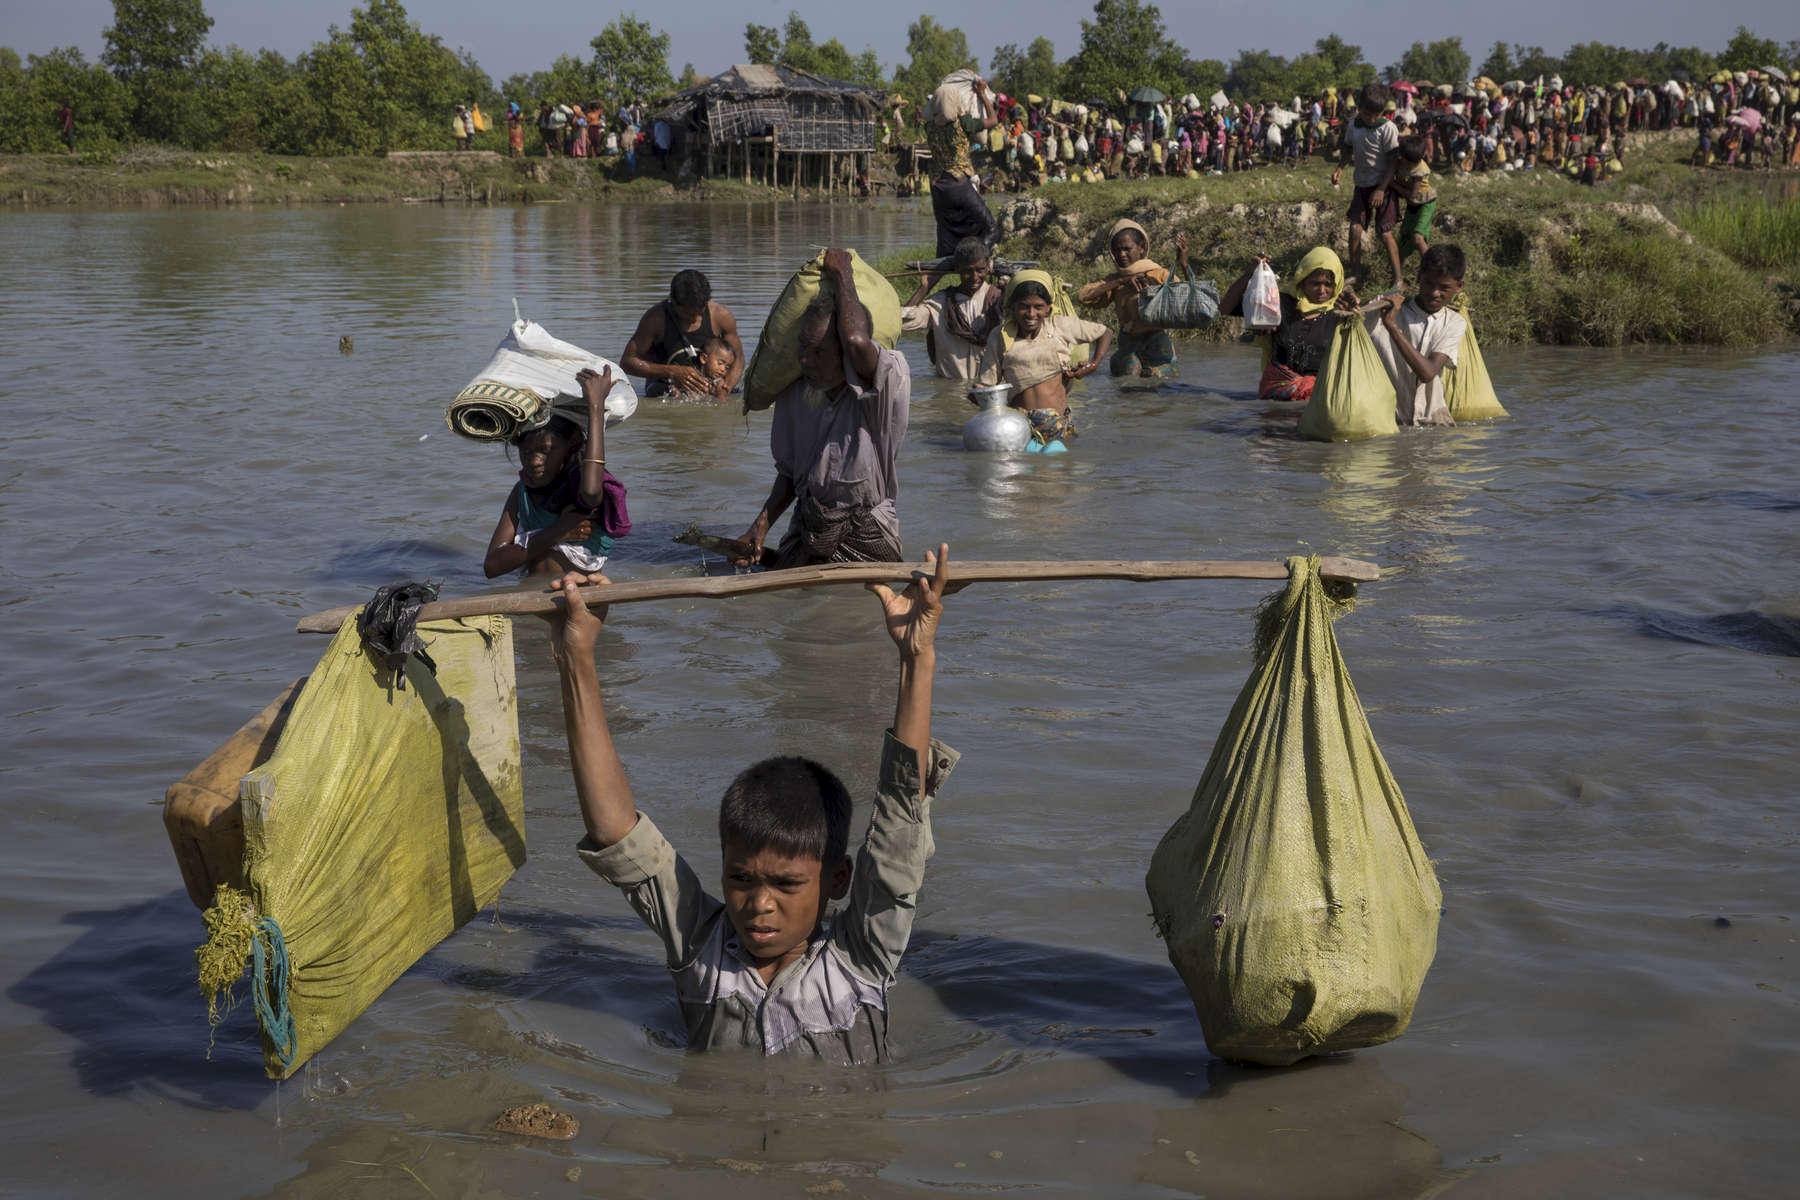 PALONG KHALI, BANGLADESH - OCTOBER 16: Thousands of Rohingya refugees fleeing from Myanmar cross a small stream in the hot sun on a muddy rice field near Palang Khali, Cox's Bazar, Bangladesh. Well over a half a million Rohingya refugees have fled into Bangladesh since late August during the outbreak of violence in Rakhine state causing a humanitarian crisis in the region with continued challenges for aid agencies.